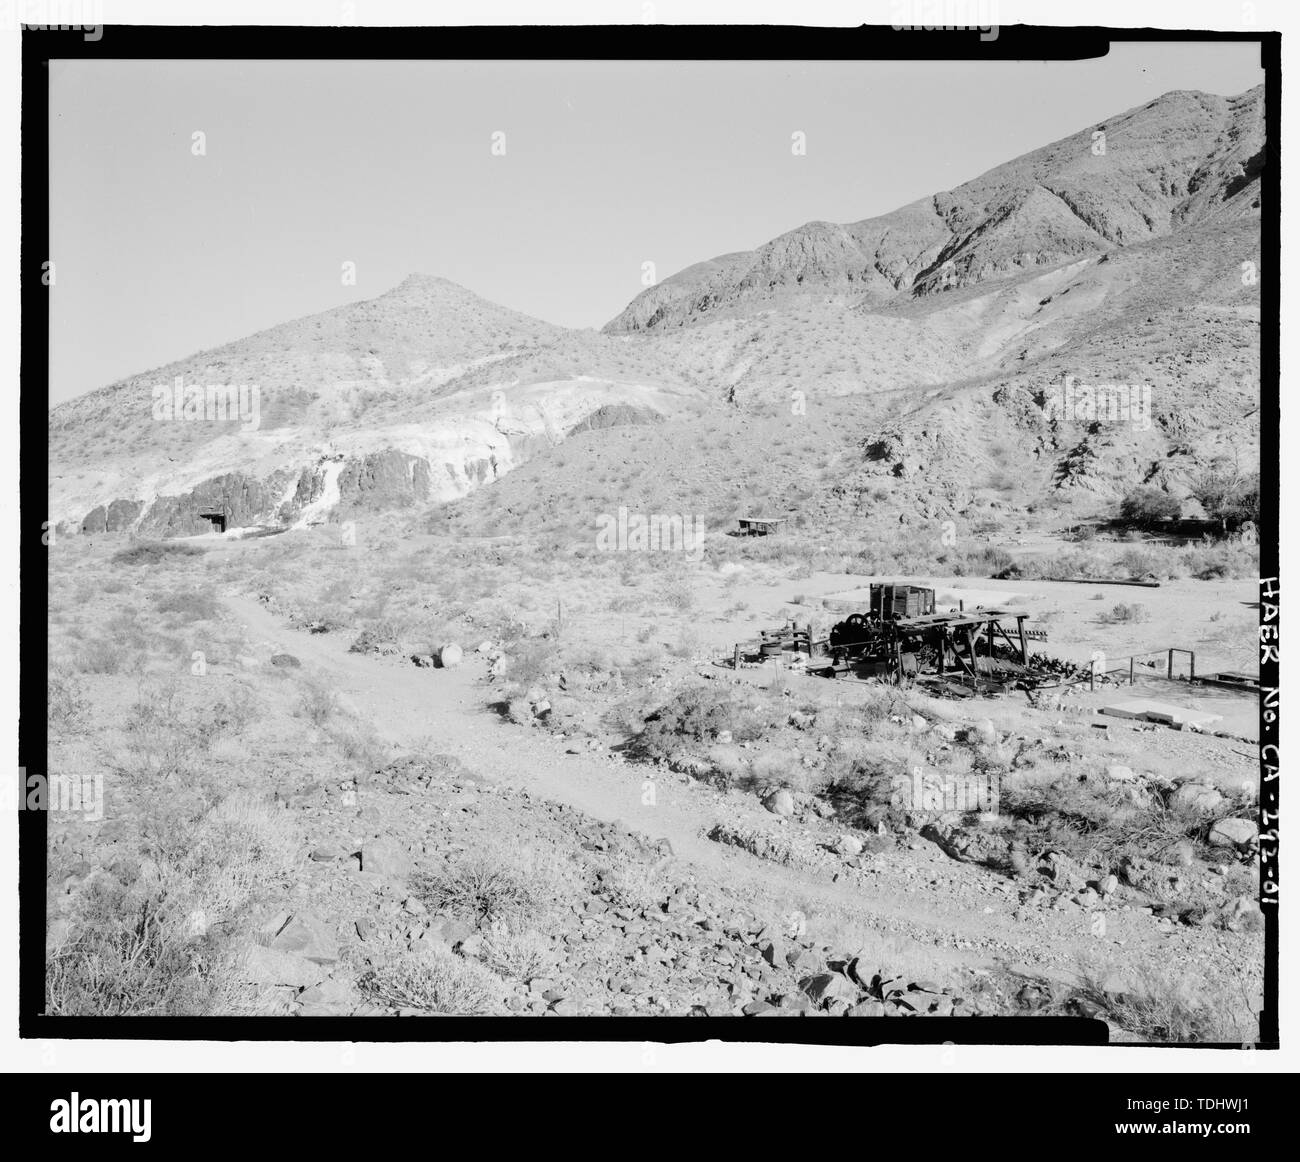 OVERVIEW OF GOLD HILL MILL, ROAD, AND WHITE PINE TALC MINE LOOKING EAST. THE OPENING TO THE TALC MINE IS IN THE DARK AREA AT CENTER LEFT EDGE. WARM SPRINGS CAMP IS OUT OF FRAME TO THE RIGHT. - Gold Hill Mill, Warm Spring Canyon Road, Death Valley Junction, Inyo County, CA - Stock Image